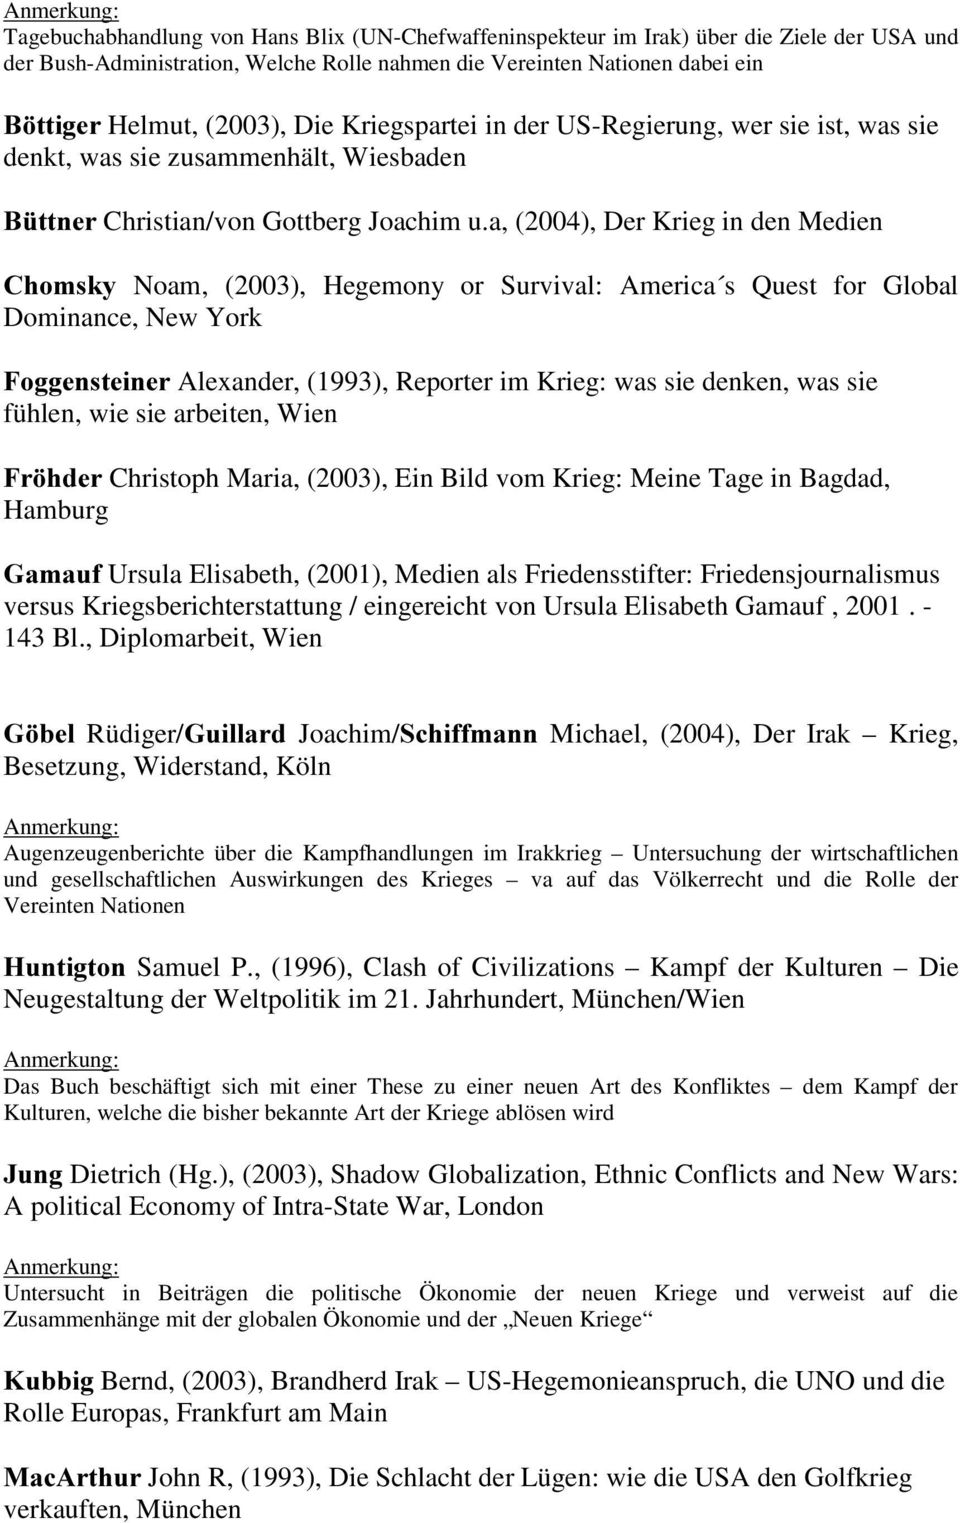 a, (2004), Der Krieg in den Medien &KRPVN\ Noam, (2003), Hegemony or Survival: America s Quest for Global Dominance, New York )RJJHQVWHLQHU Alexander, (1993), Reporter im Krieg: was sie denken, was